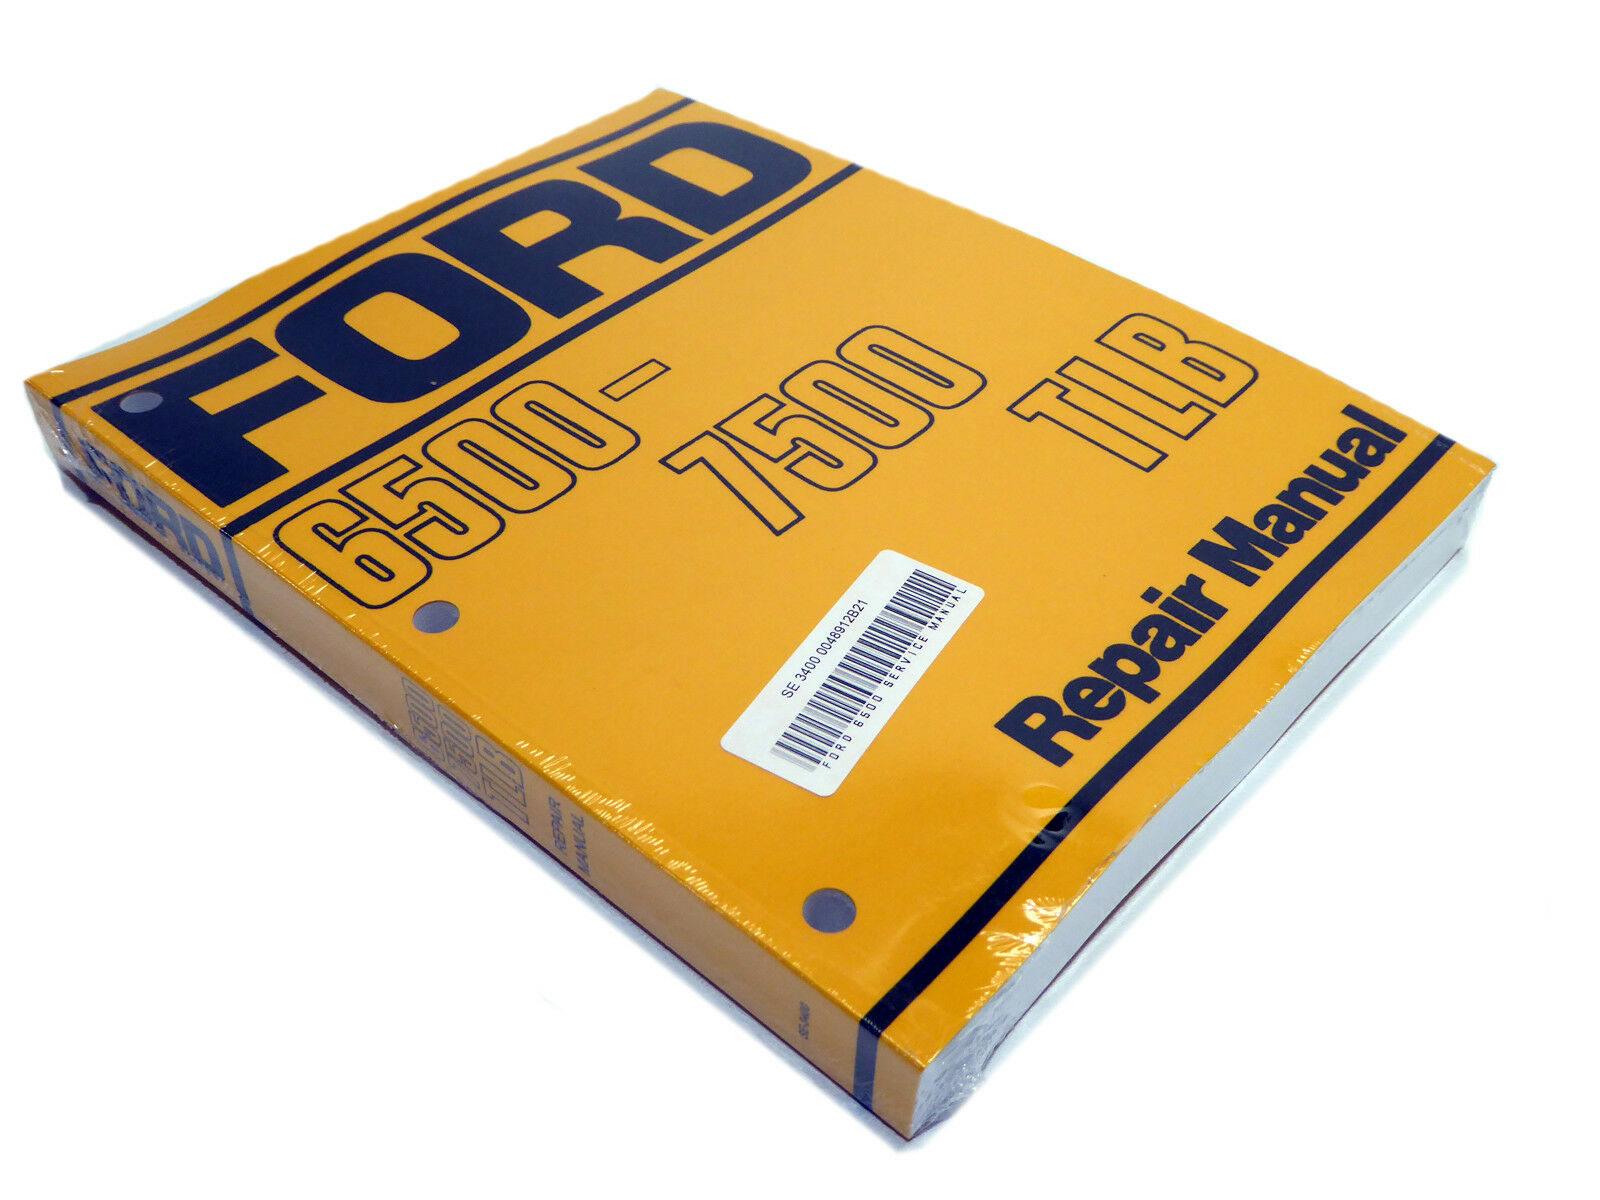 Ford 6500, 7500 TLB Tractor Loader Backhoe Service Manual Repair Shop Book  NEW 1 of 12Only 2 available ...